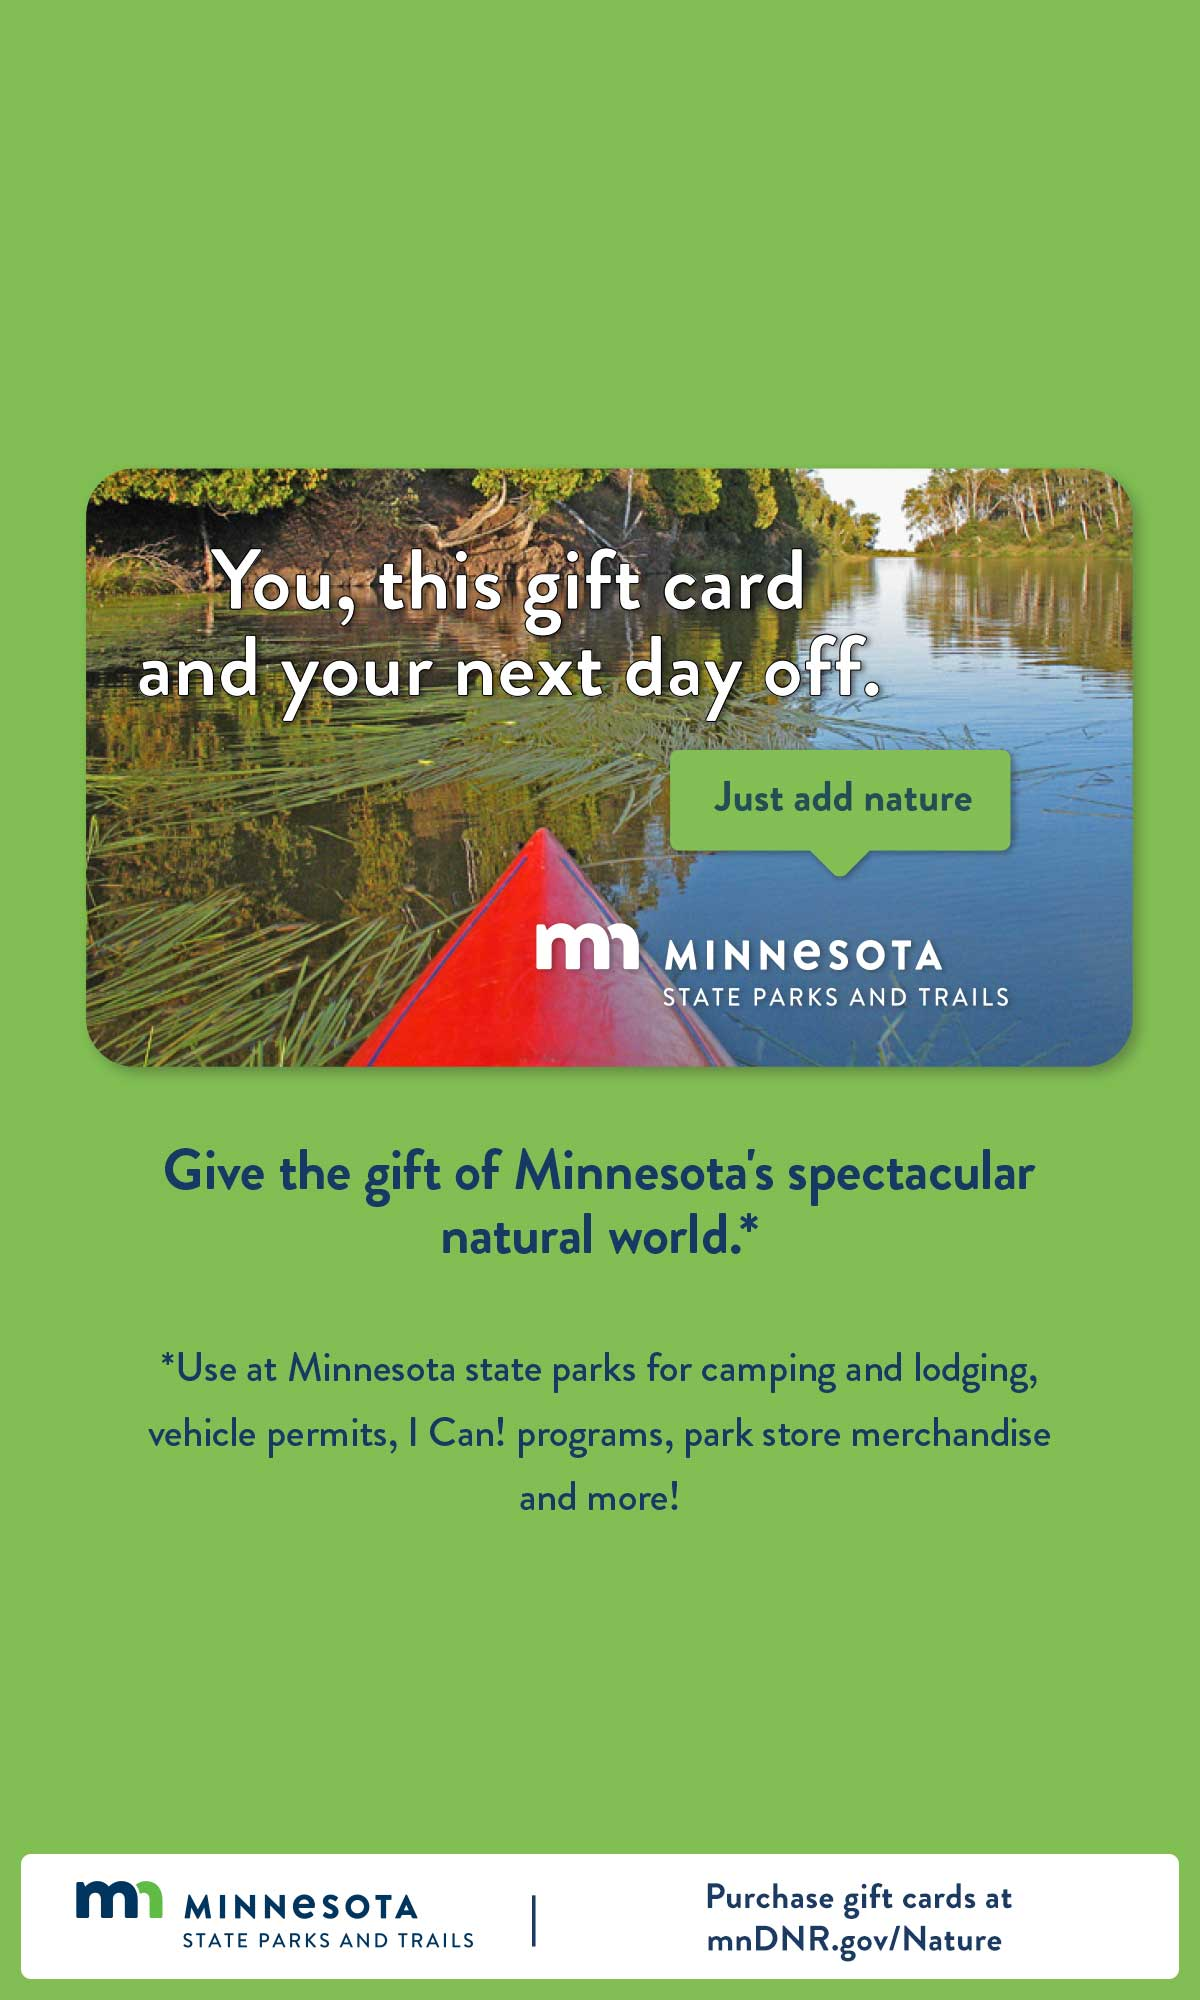 You, this gift card and your next day off. Just add nature.